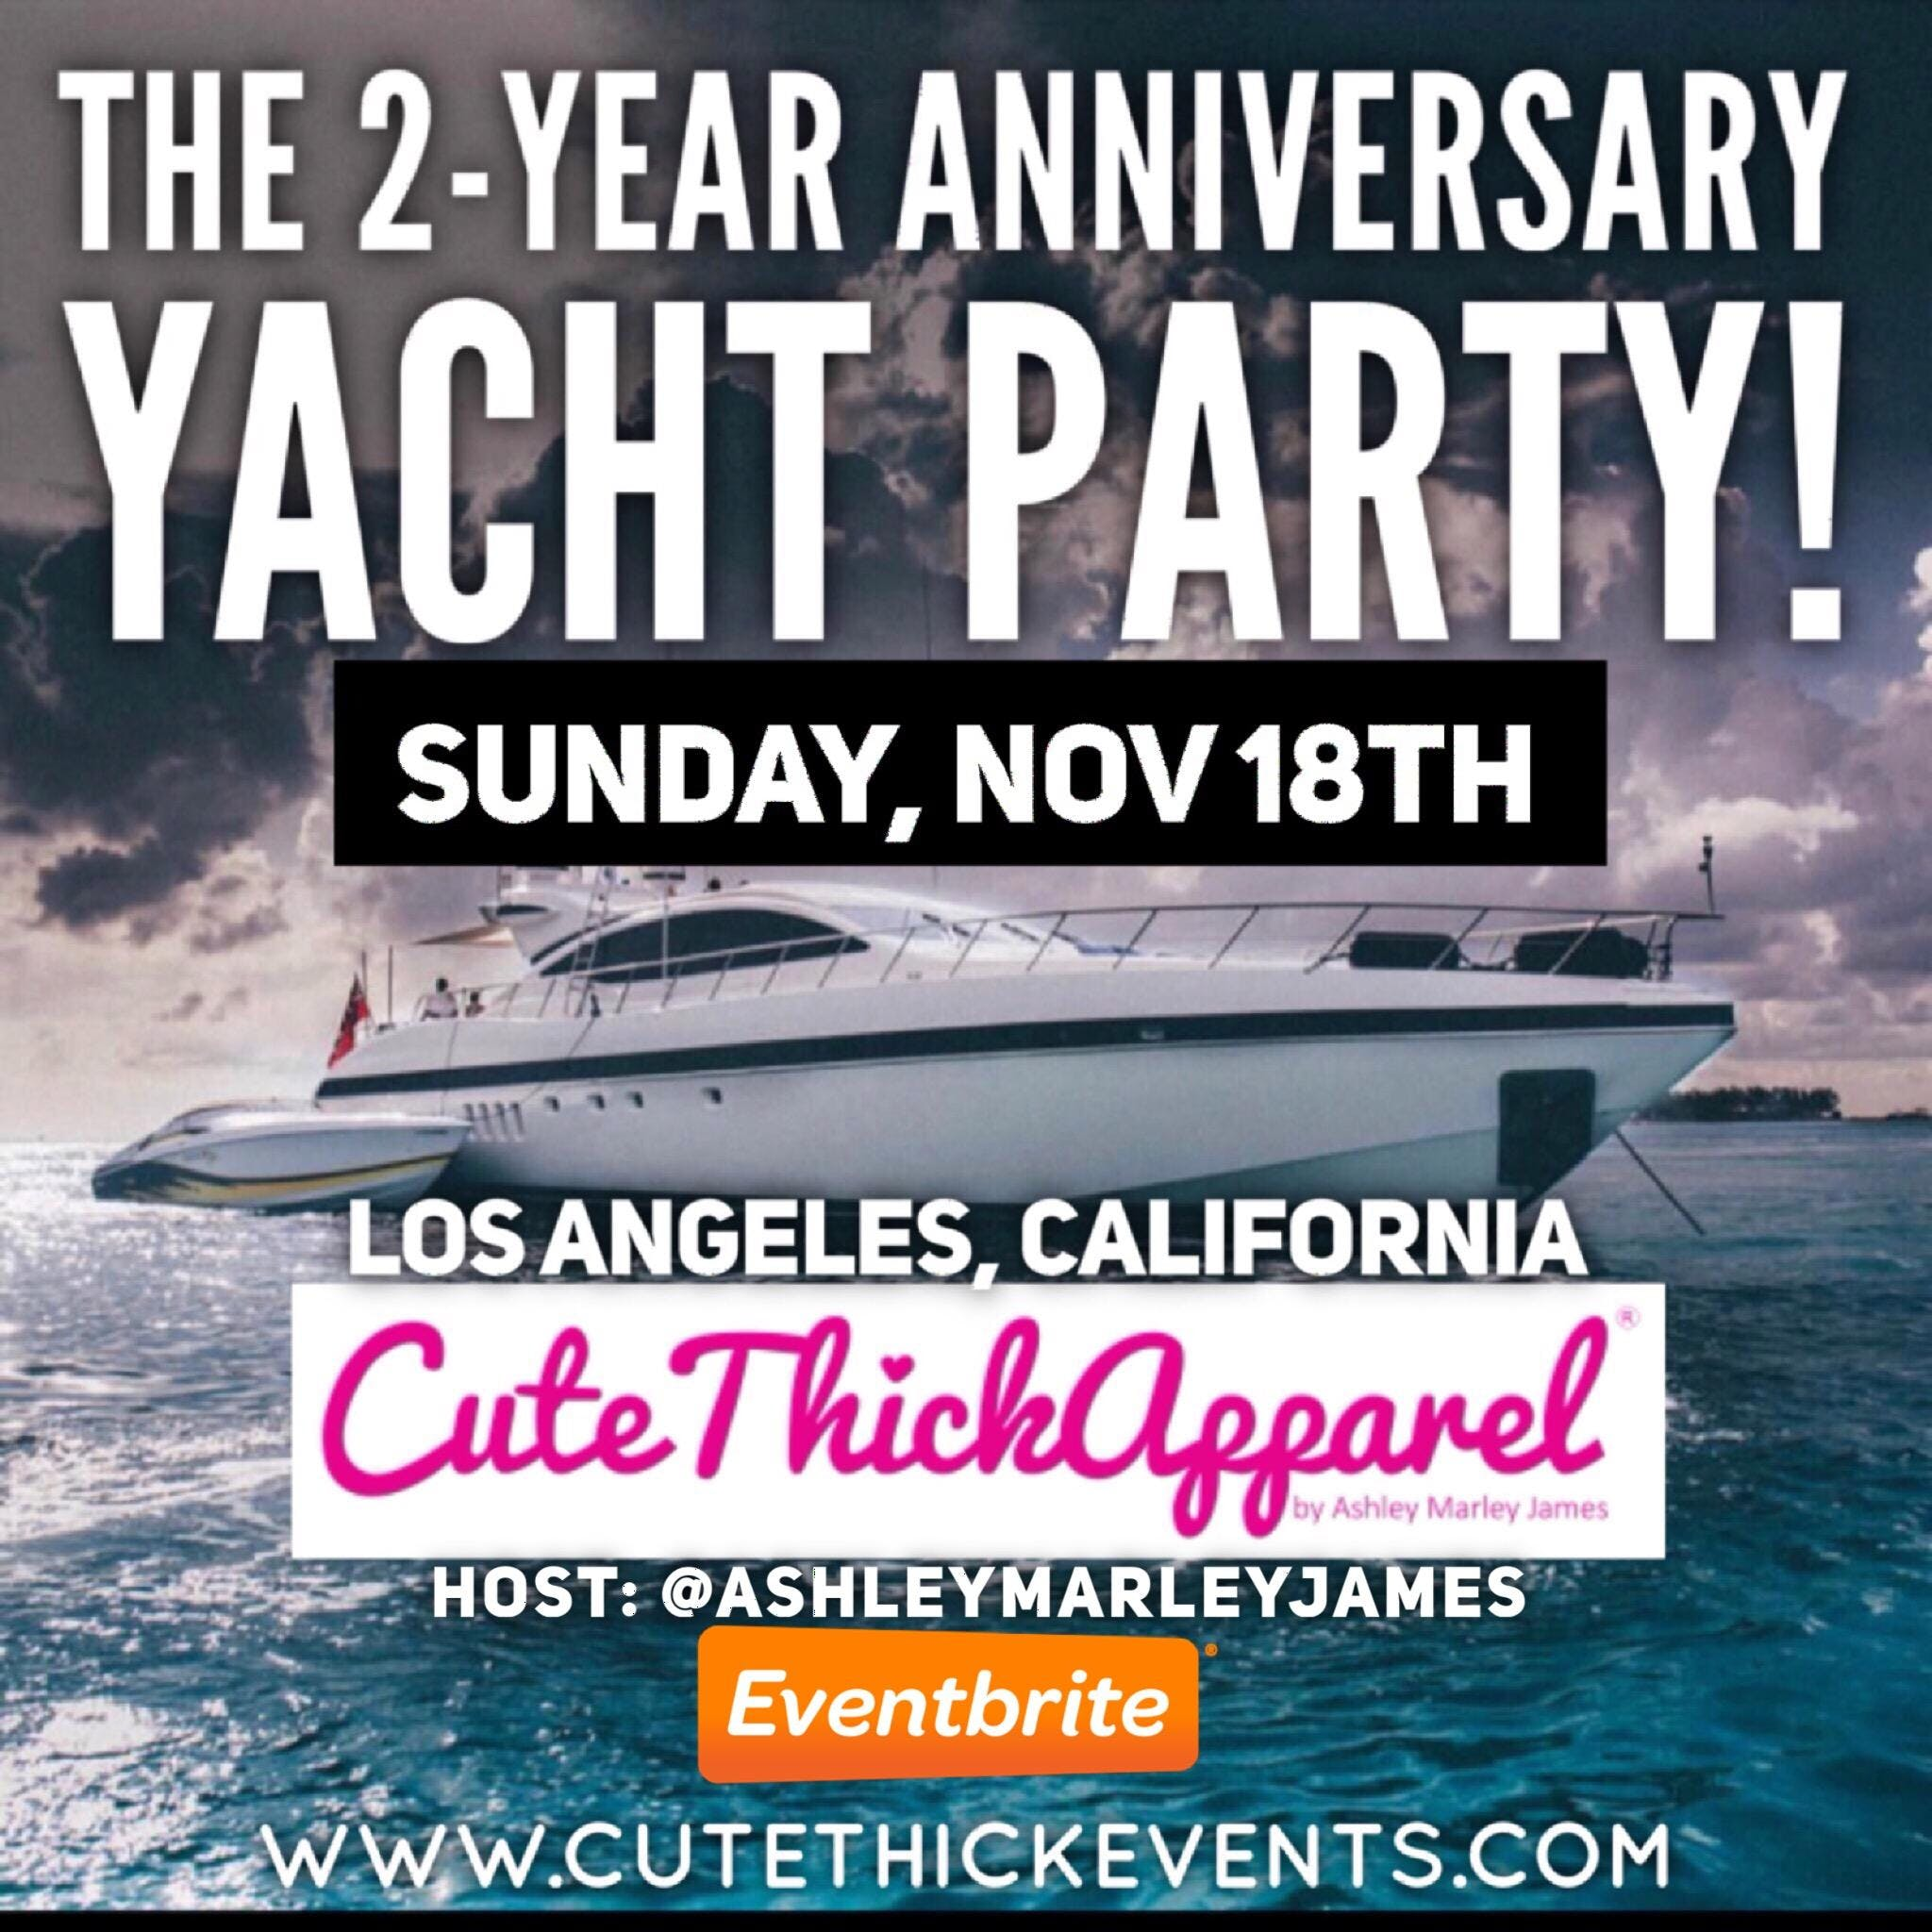 Cute Thick Apparel 2-Year Anniversary Yacht P